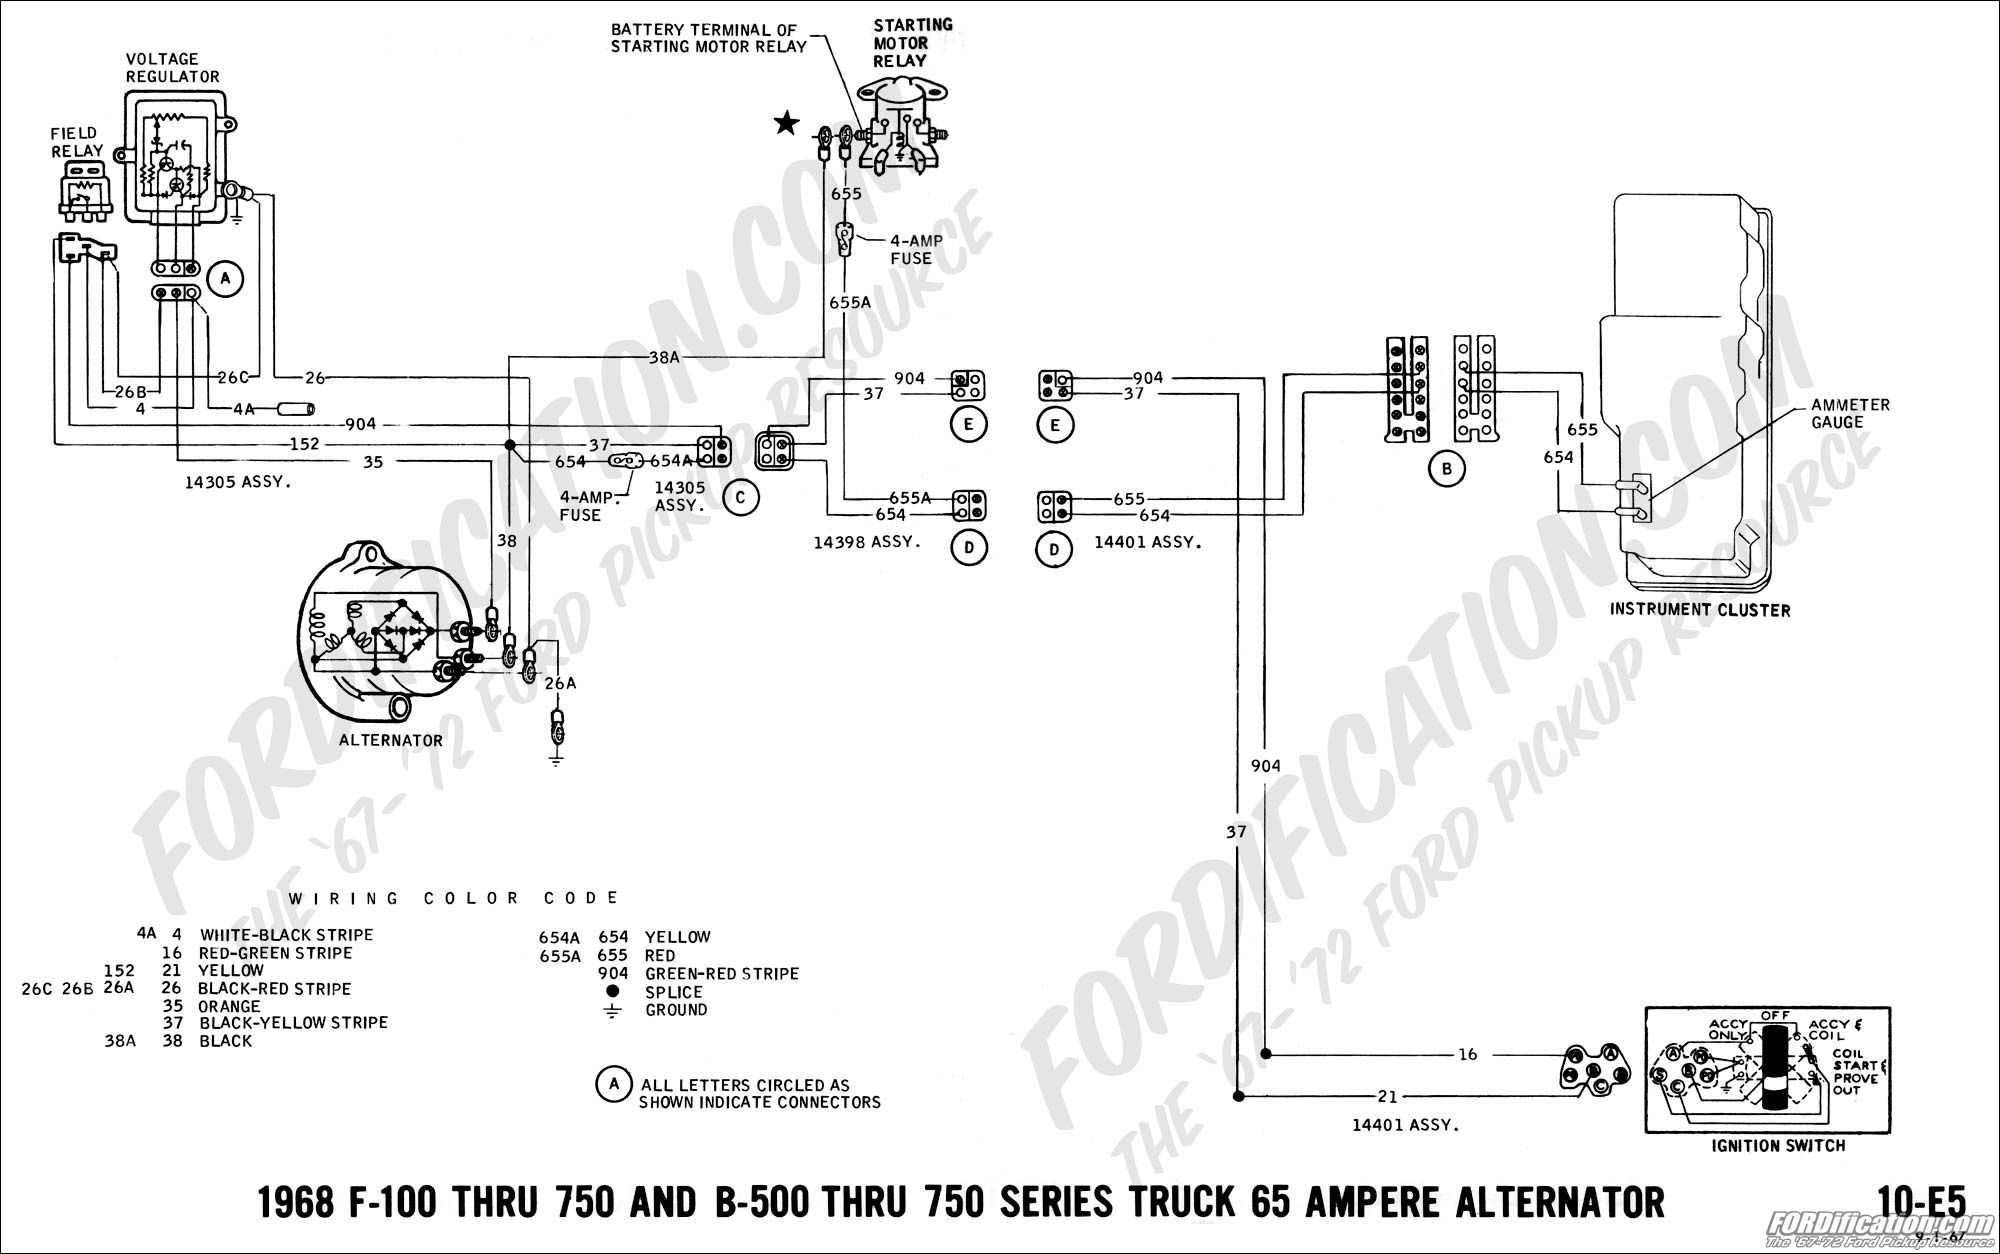 medium resolution of 1669 f150 wiring diagram wiring diagram pass 1669 f150 wiring diagram